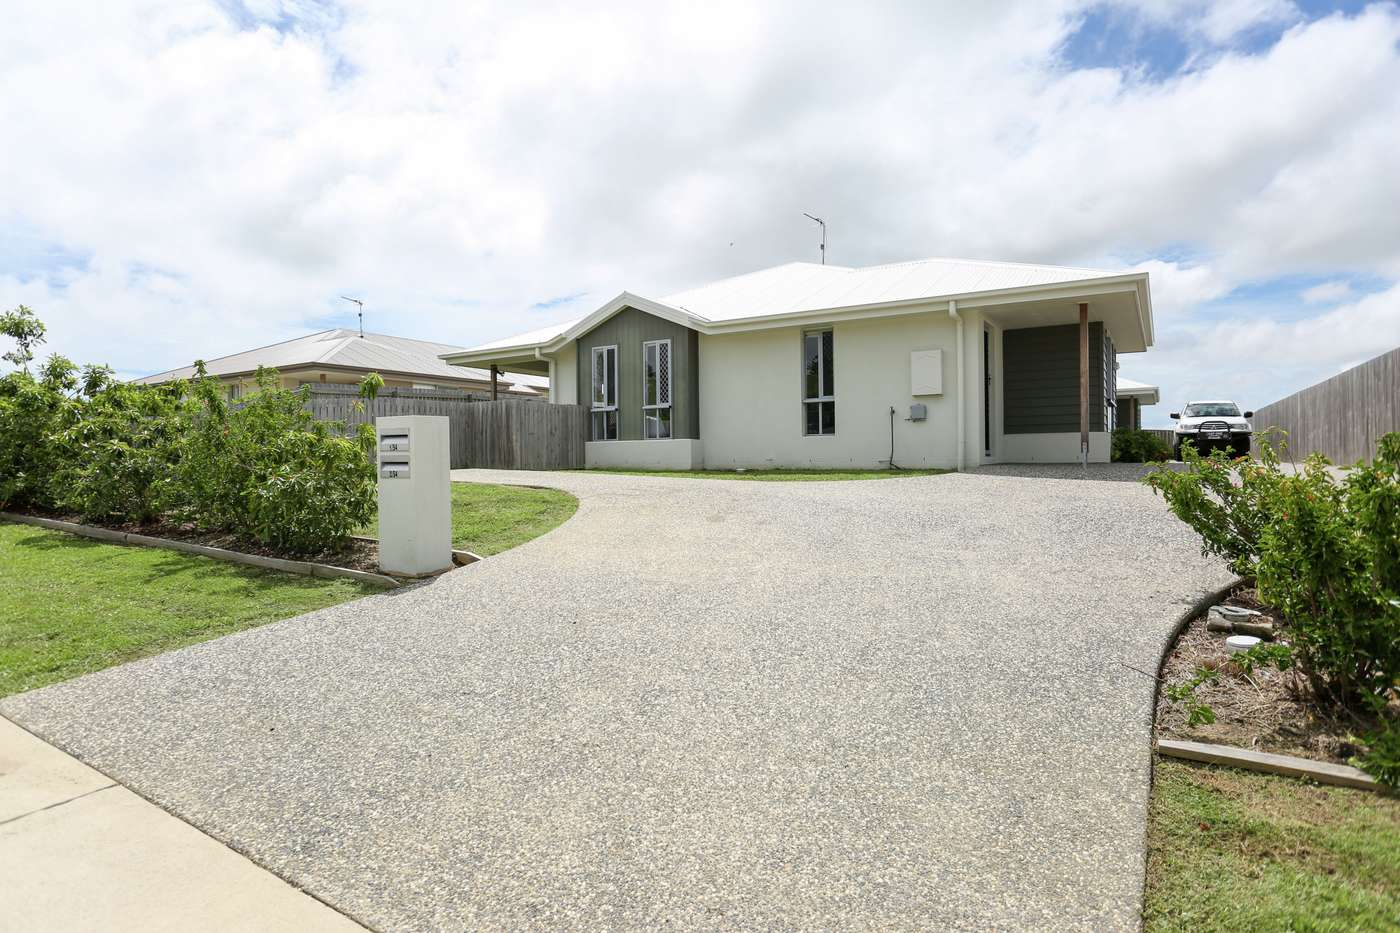 Main view of Homely semidetached listing, 1/54 Dawson Boulevard, Rural View, QLD 4740